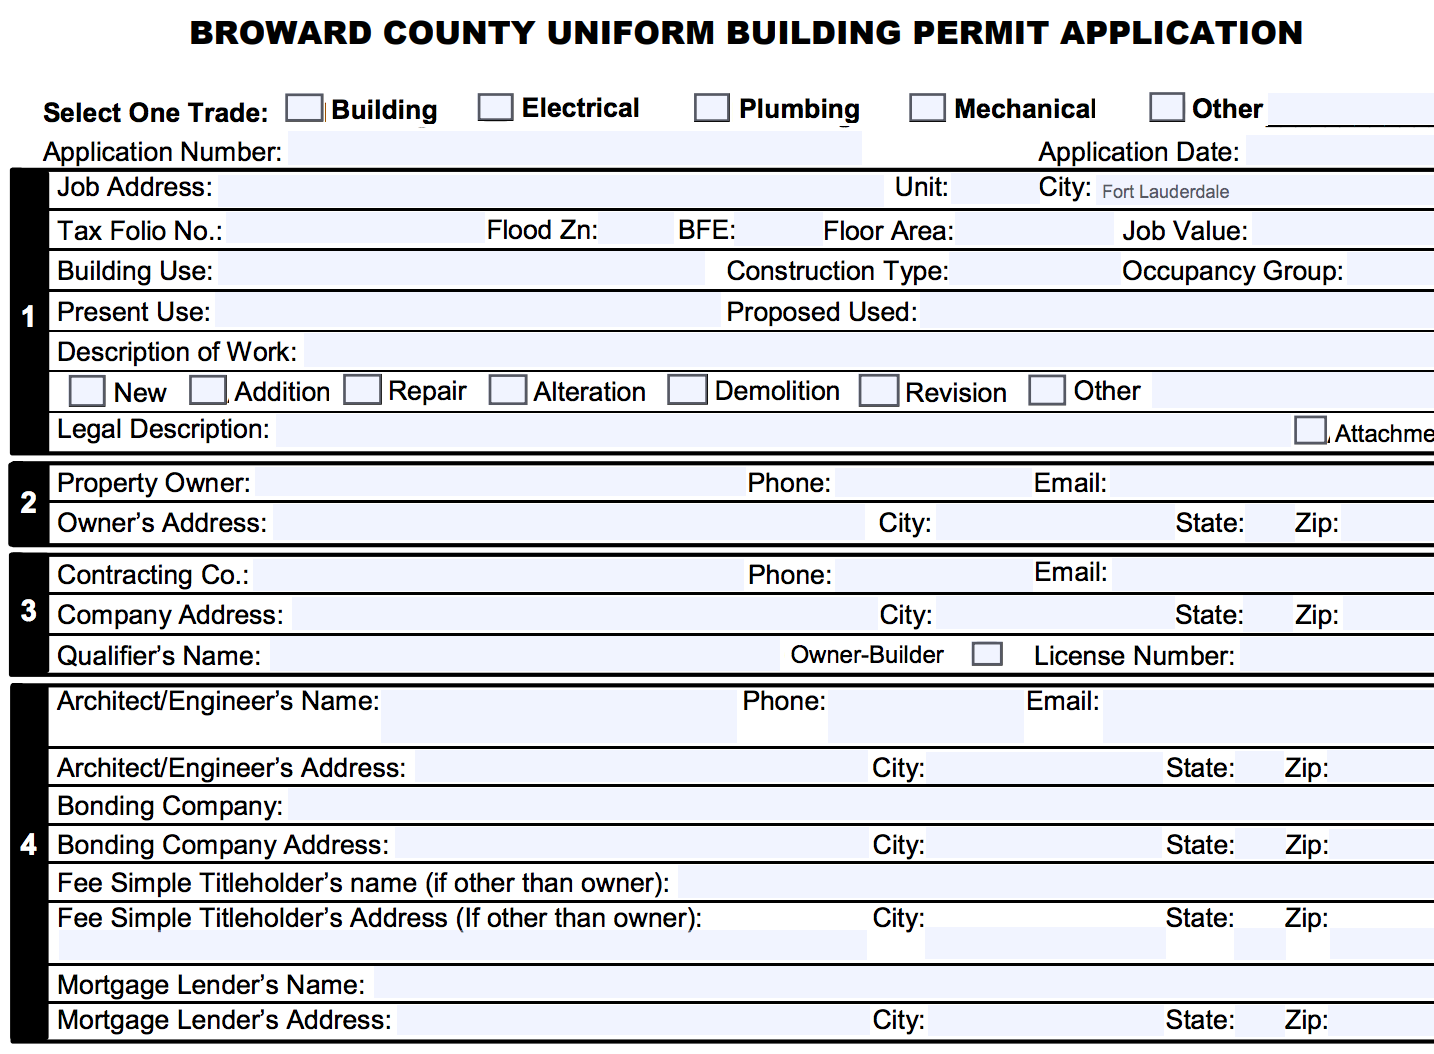 Home Office Addition Permits Broward County | Building Permit Tips Broward